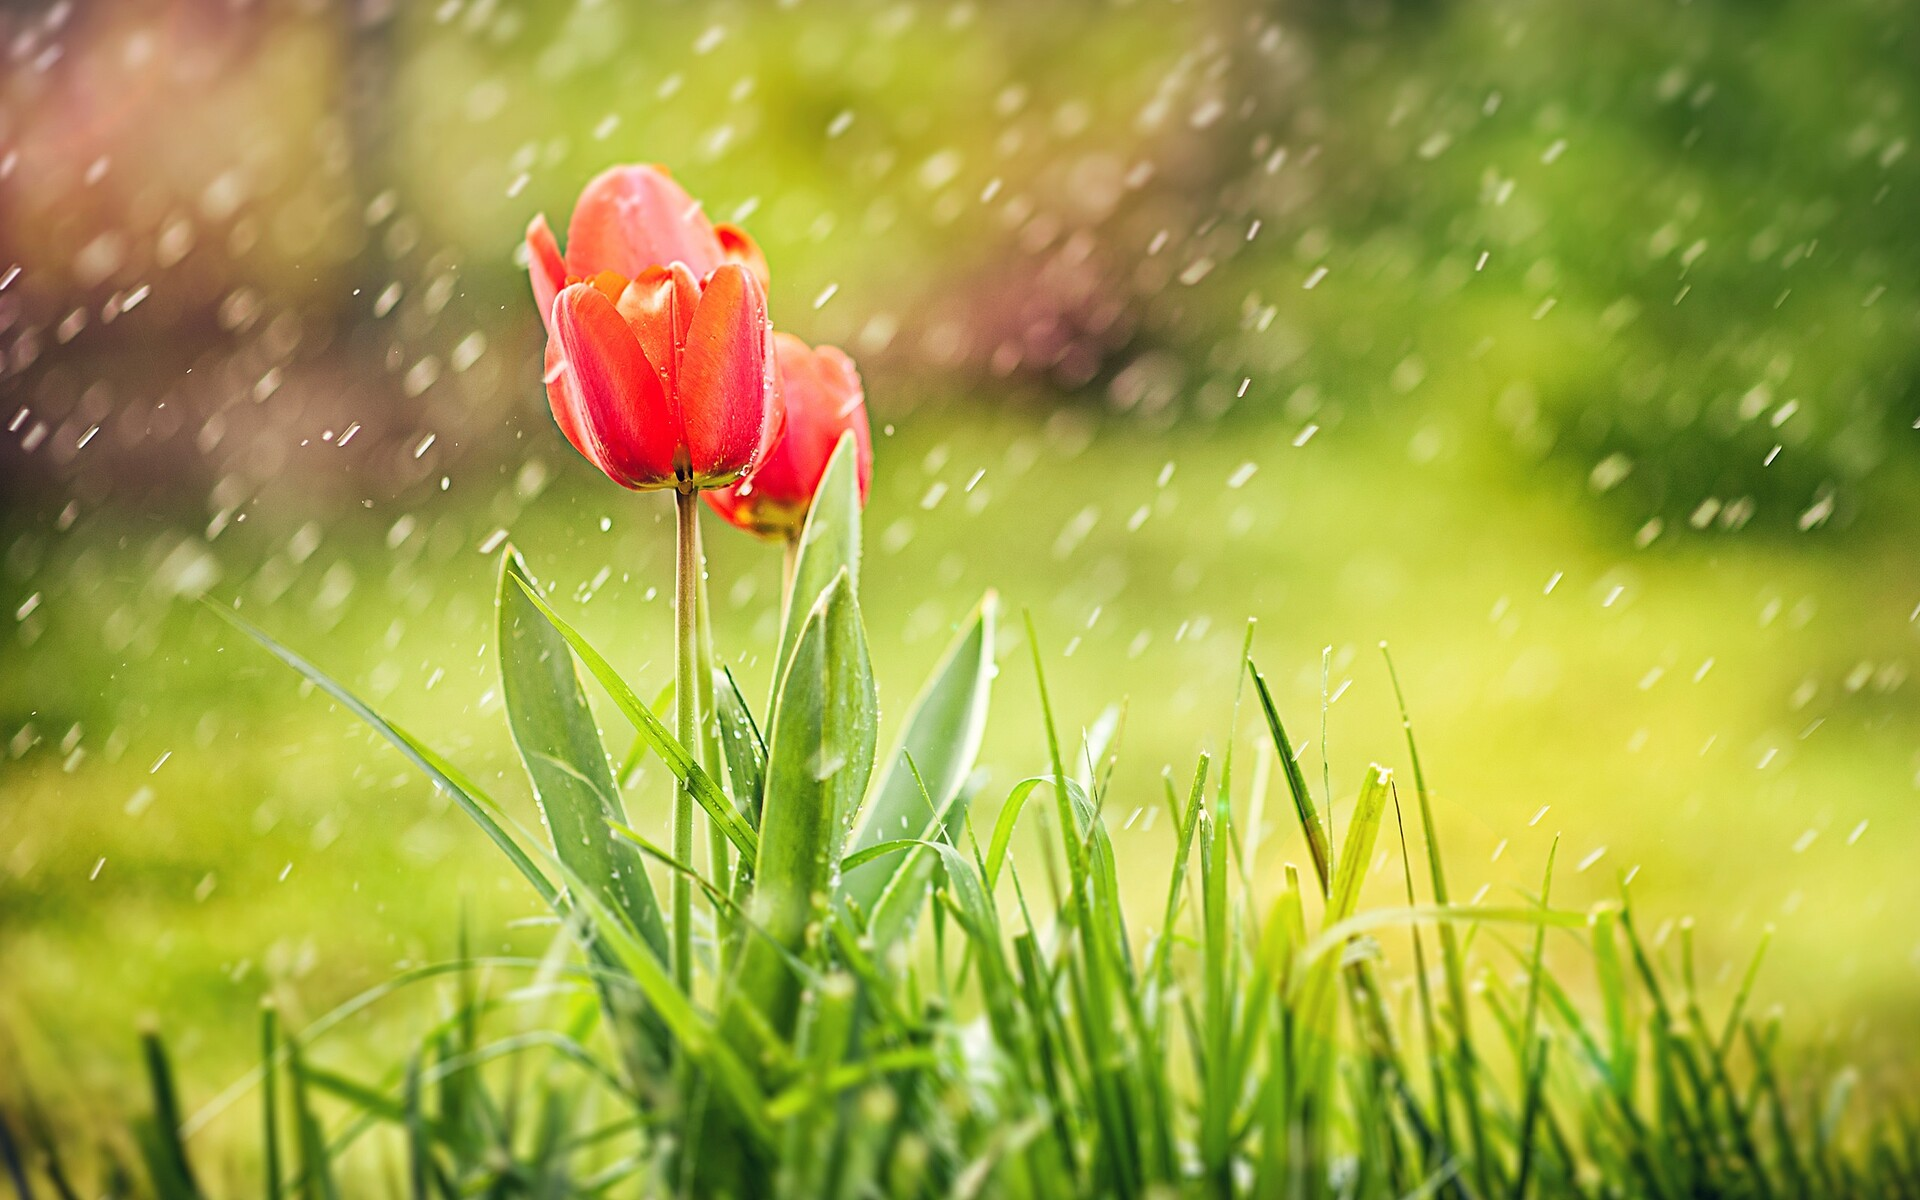 1920x1200 Tulip Rain Hd 1080p Resolution Hd 4k Wallpapers Images